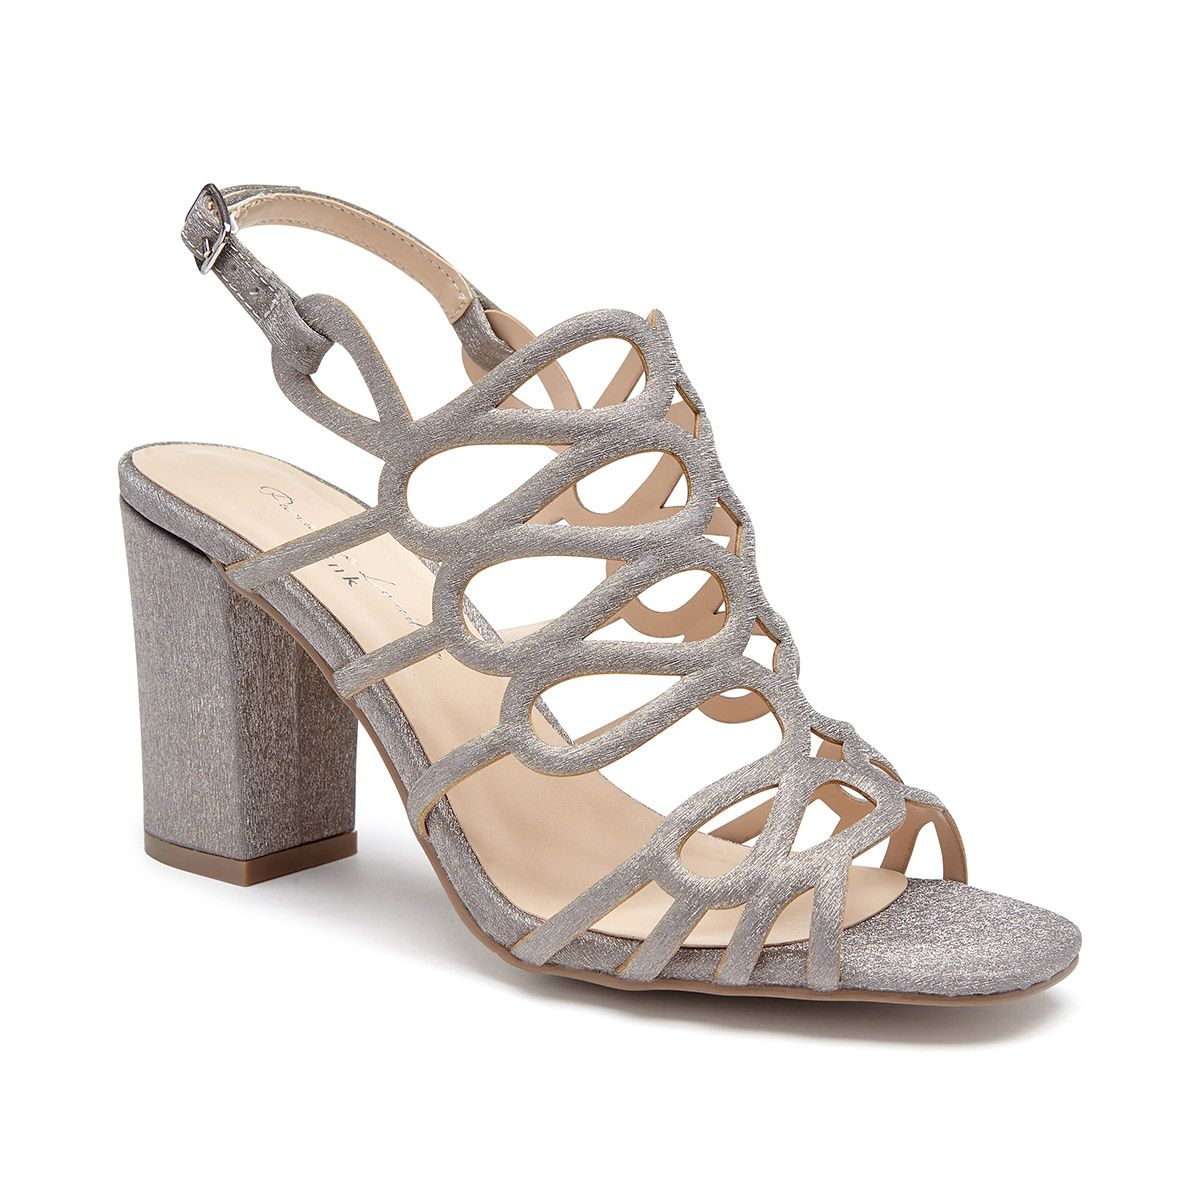 7663011f6814 Salisa Taupe High Block Heel Sandal | Sandals | Occasion Shoes | Paradox  London